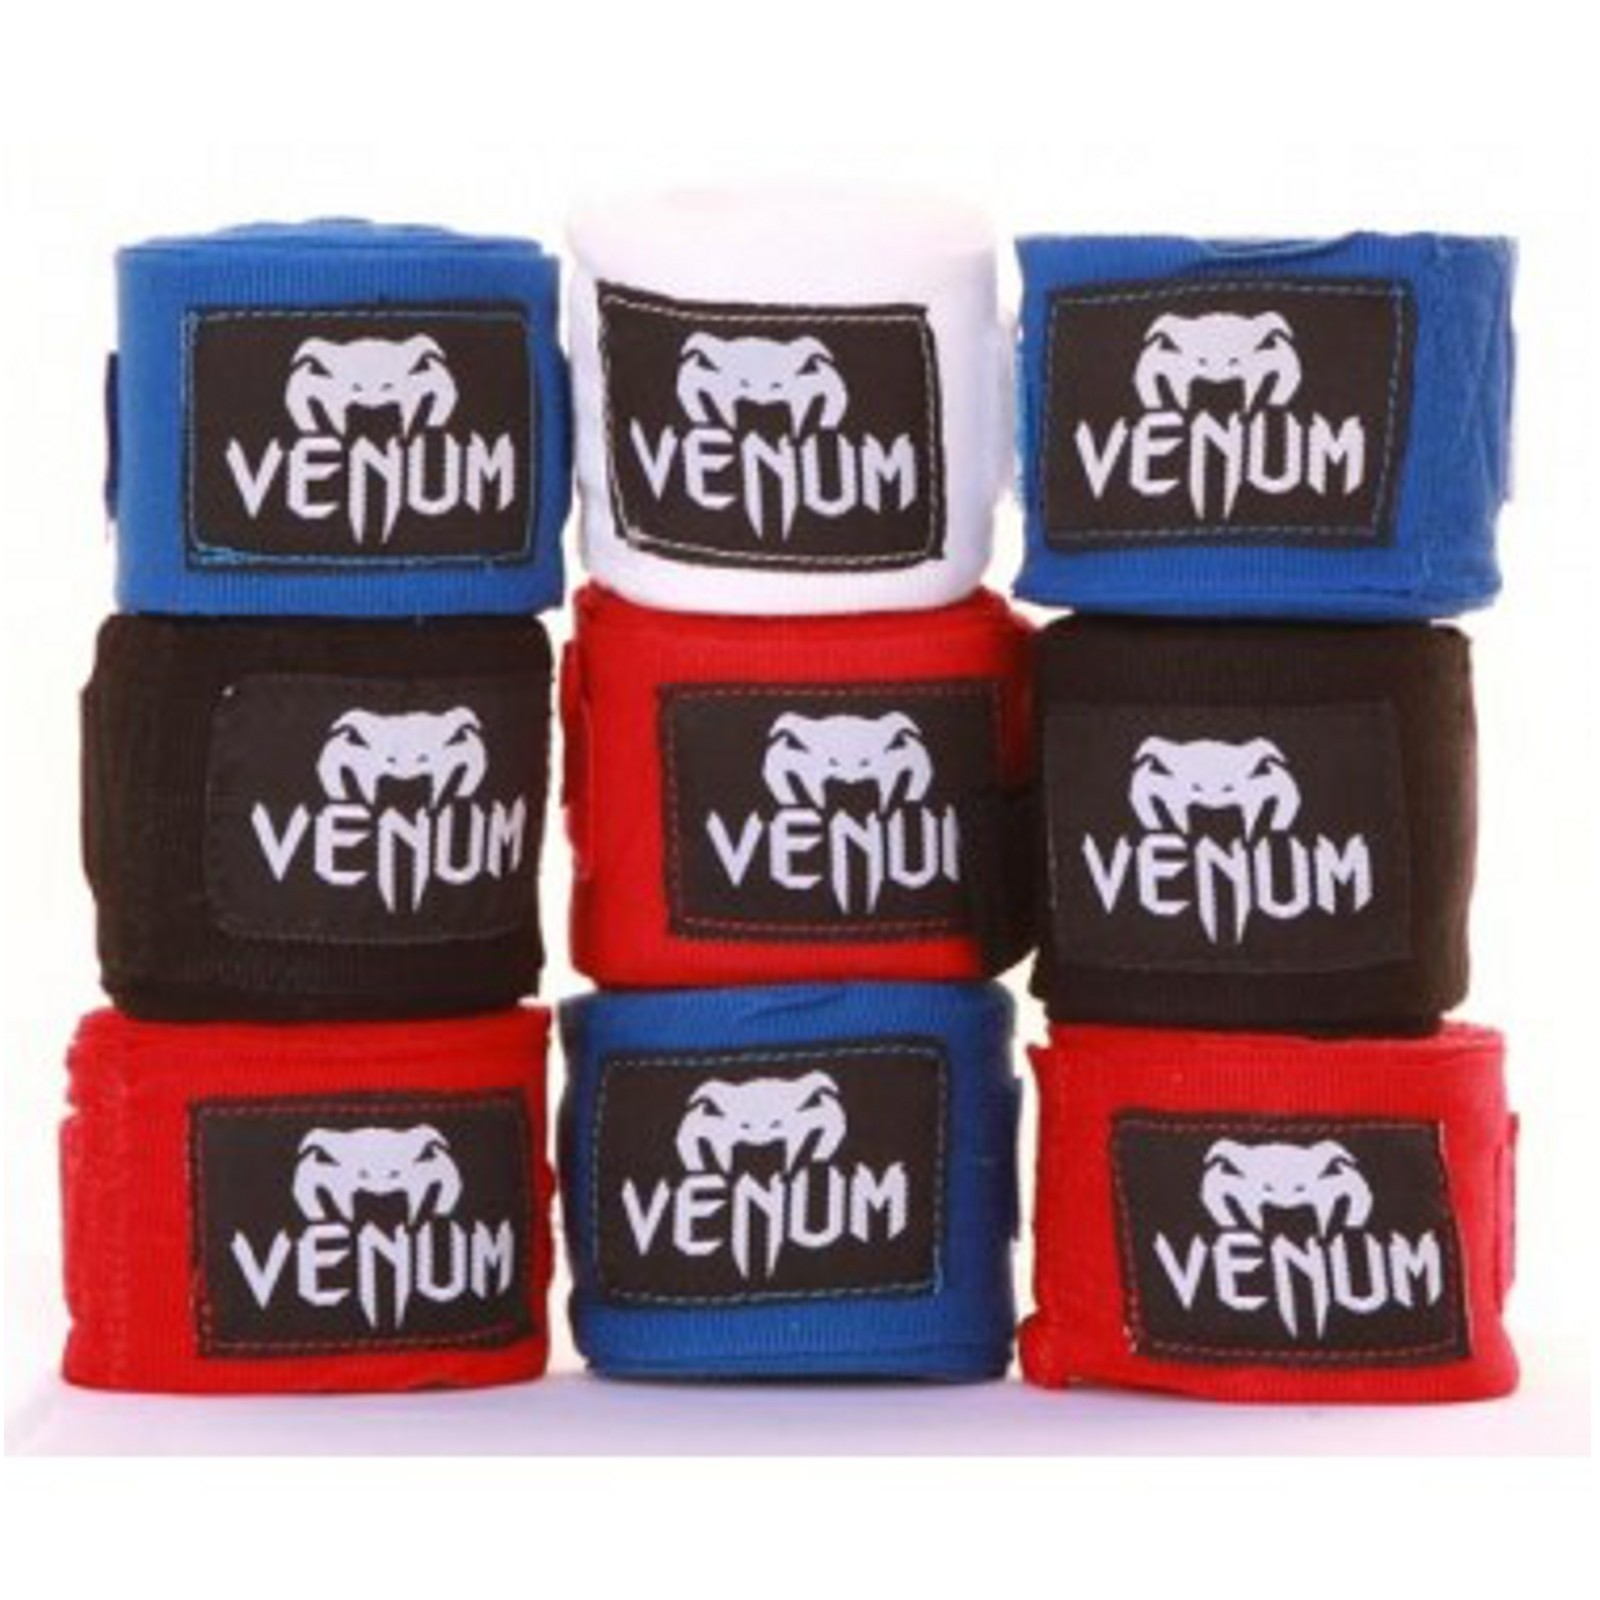 Venum Boxing Handwraps Buy & test - T-Fitness